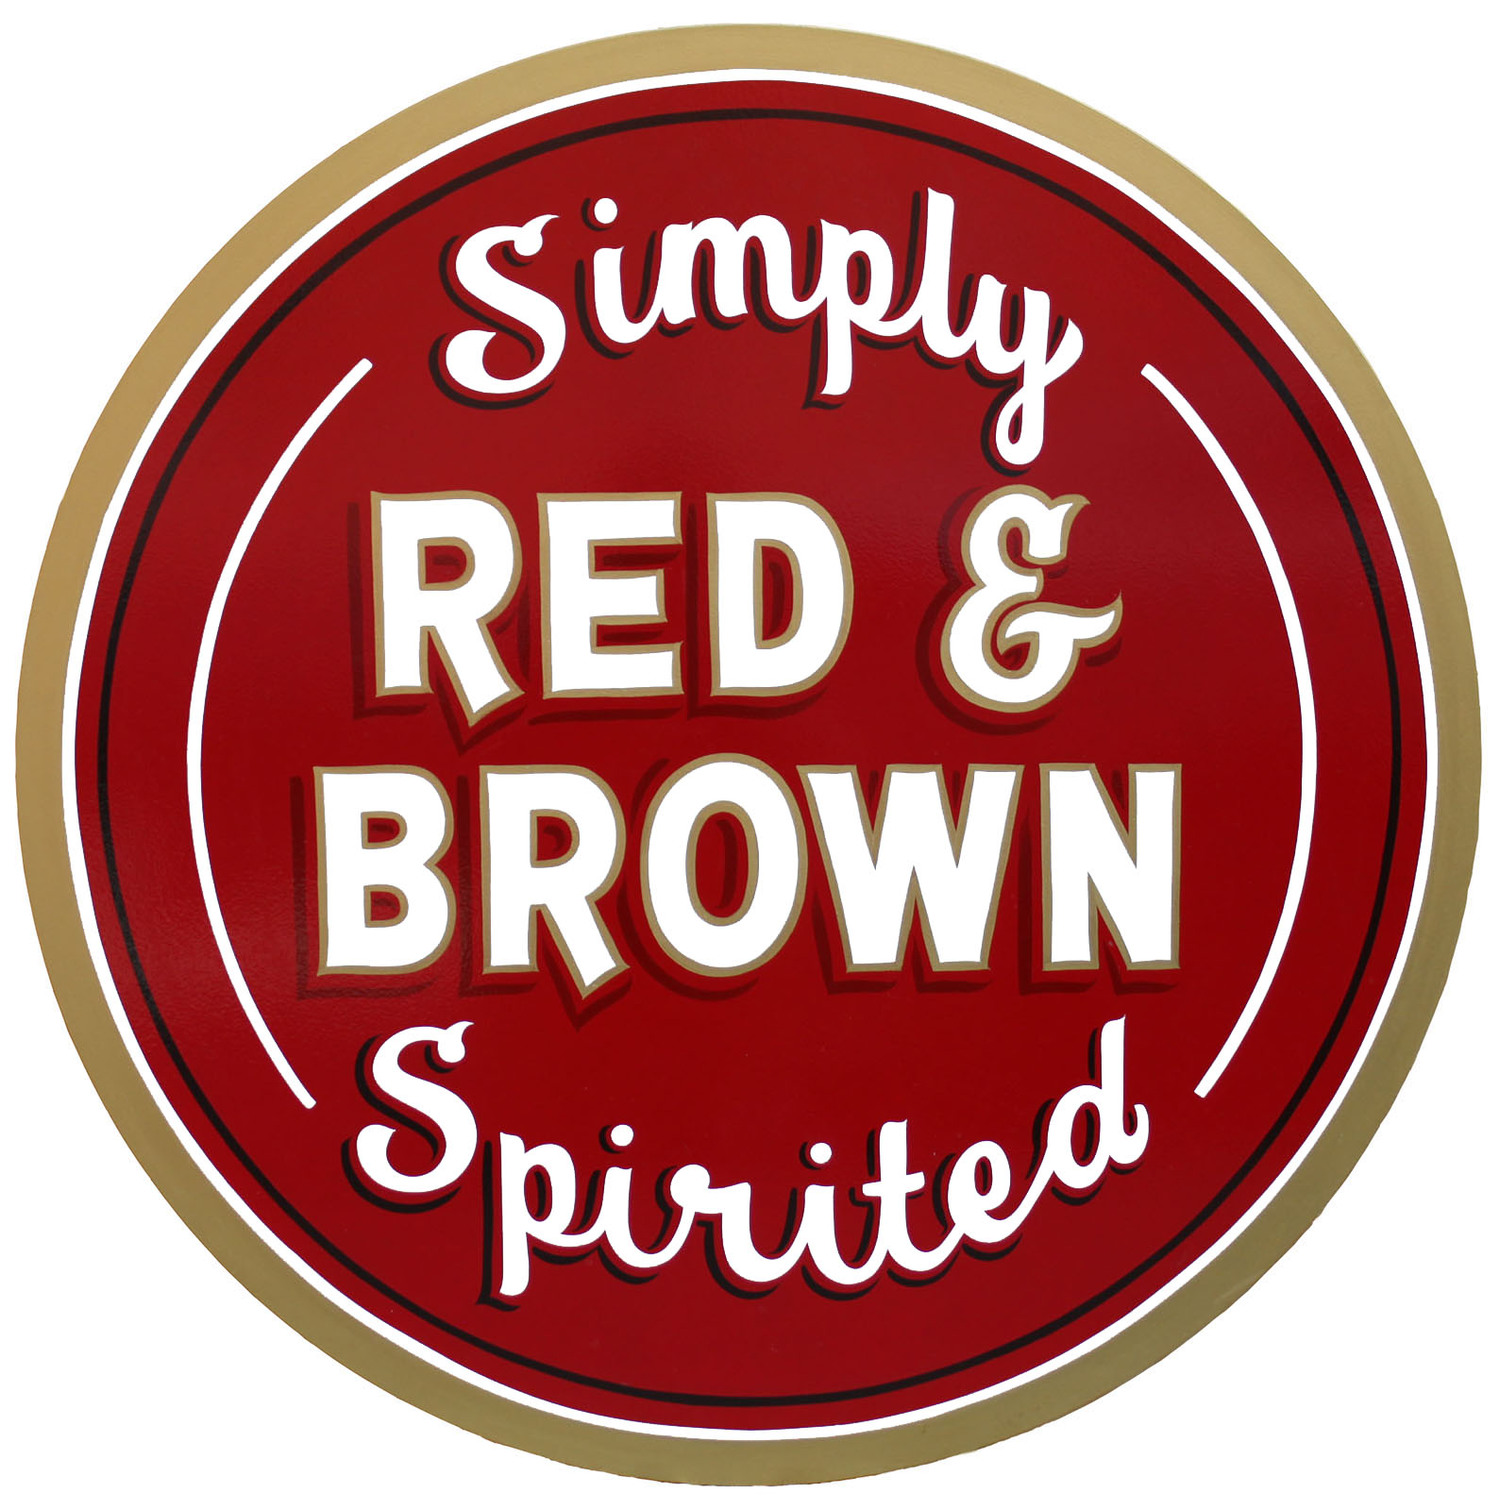 Red & Brown